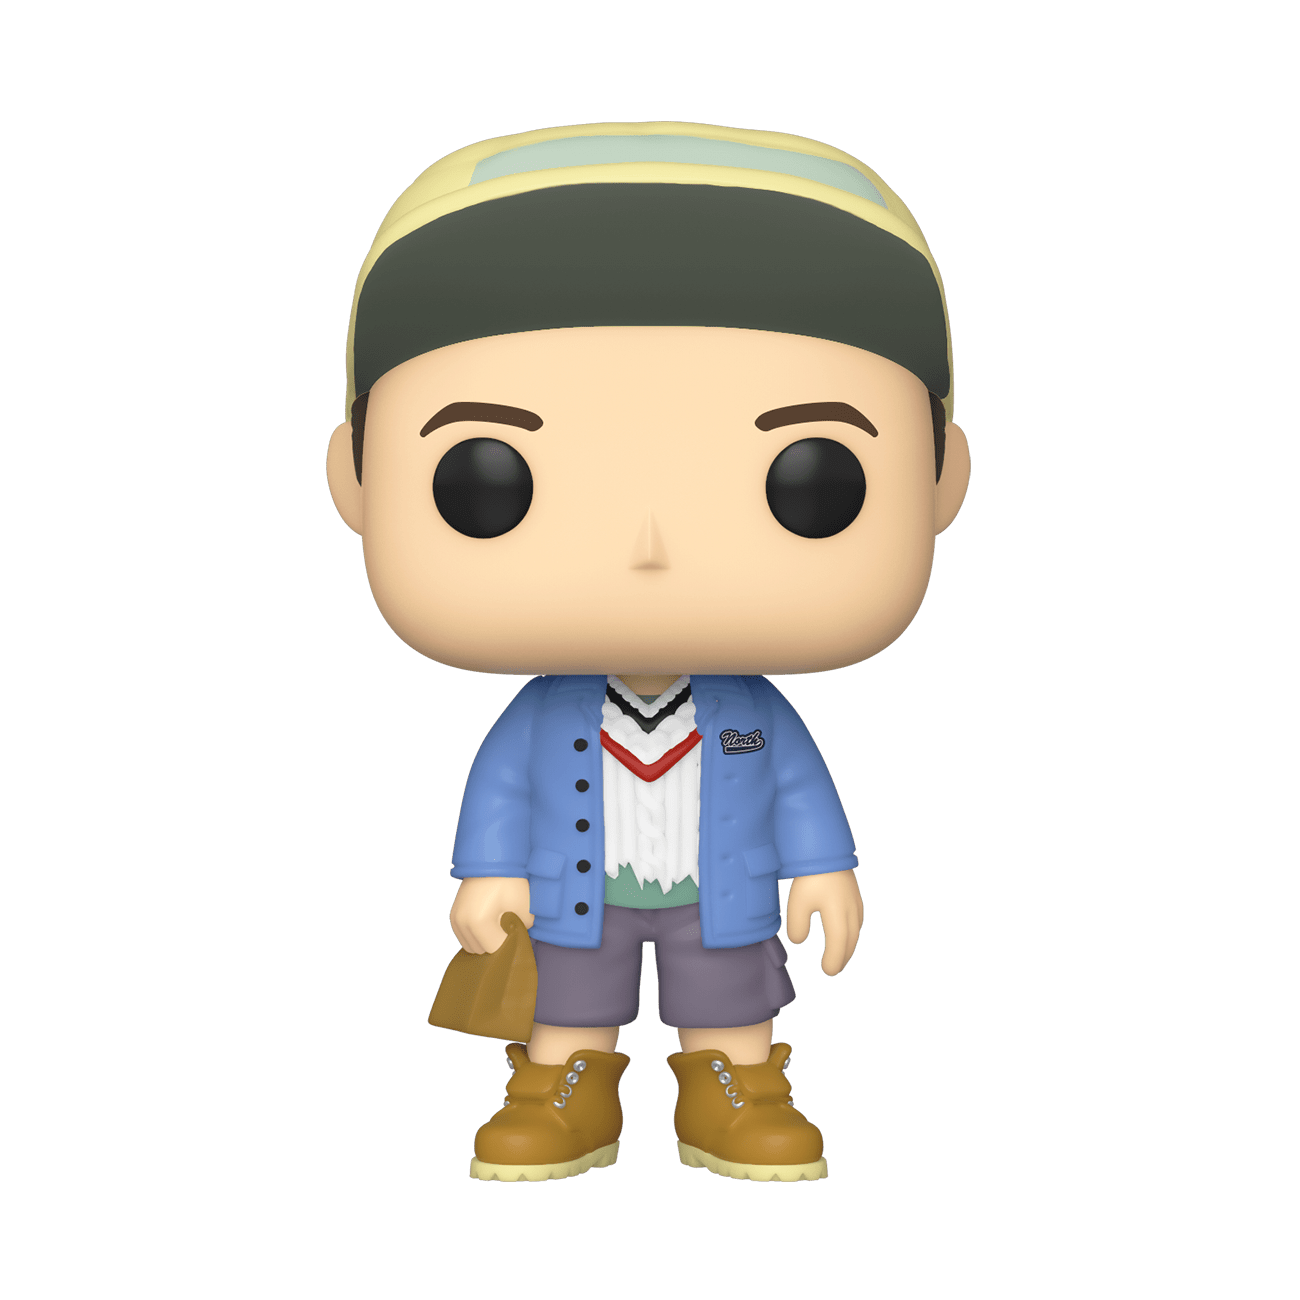 PRE-ORDER Billy Madison with Lunch Bag Exclusive Pop! Vinyl Figure